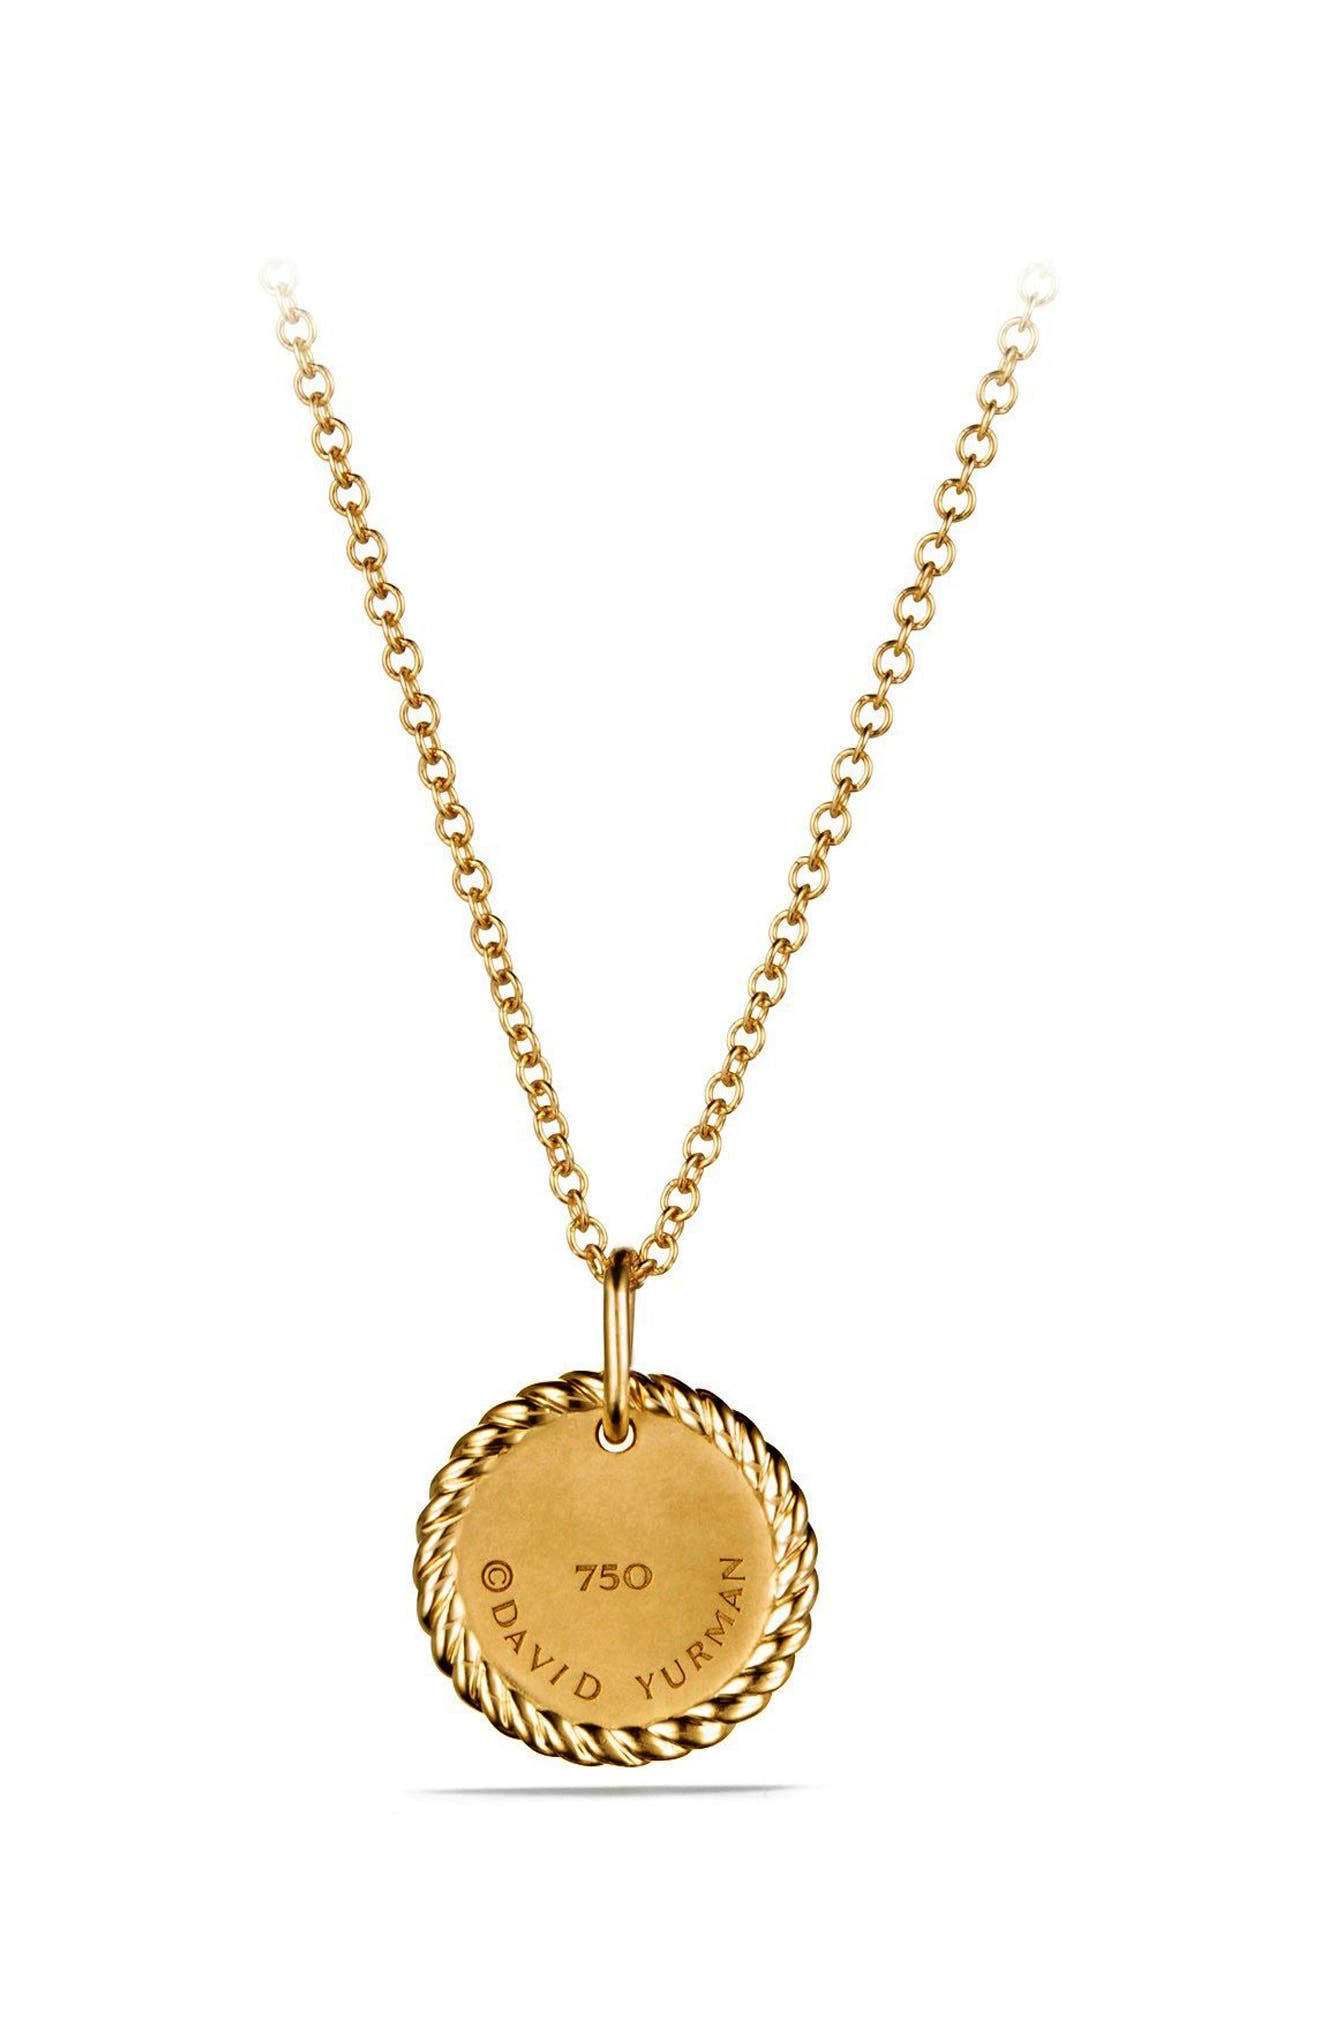 'Cable Collectibles' Pavé Charm with Diamonds in Gold,                             Alternate thumbnail 3, color,                             GOLD